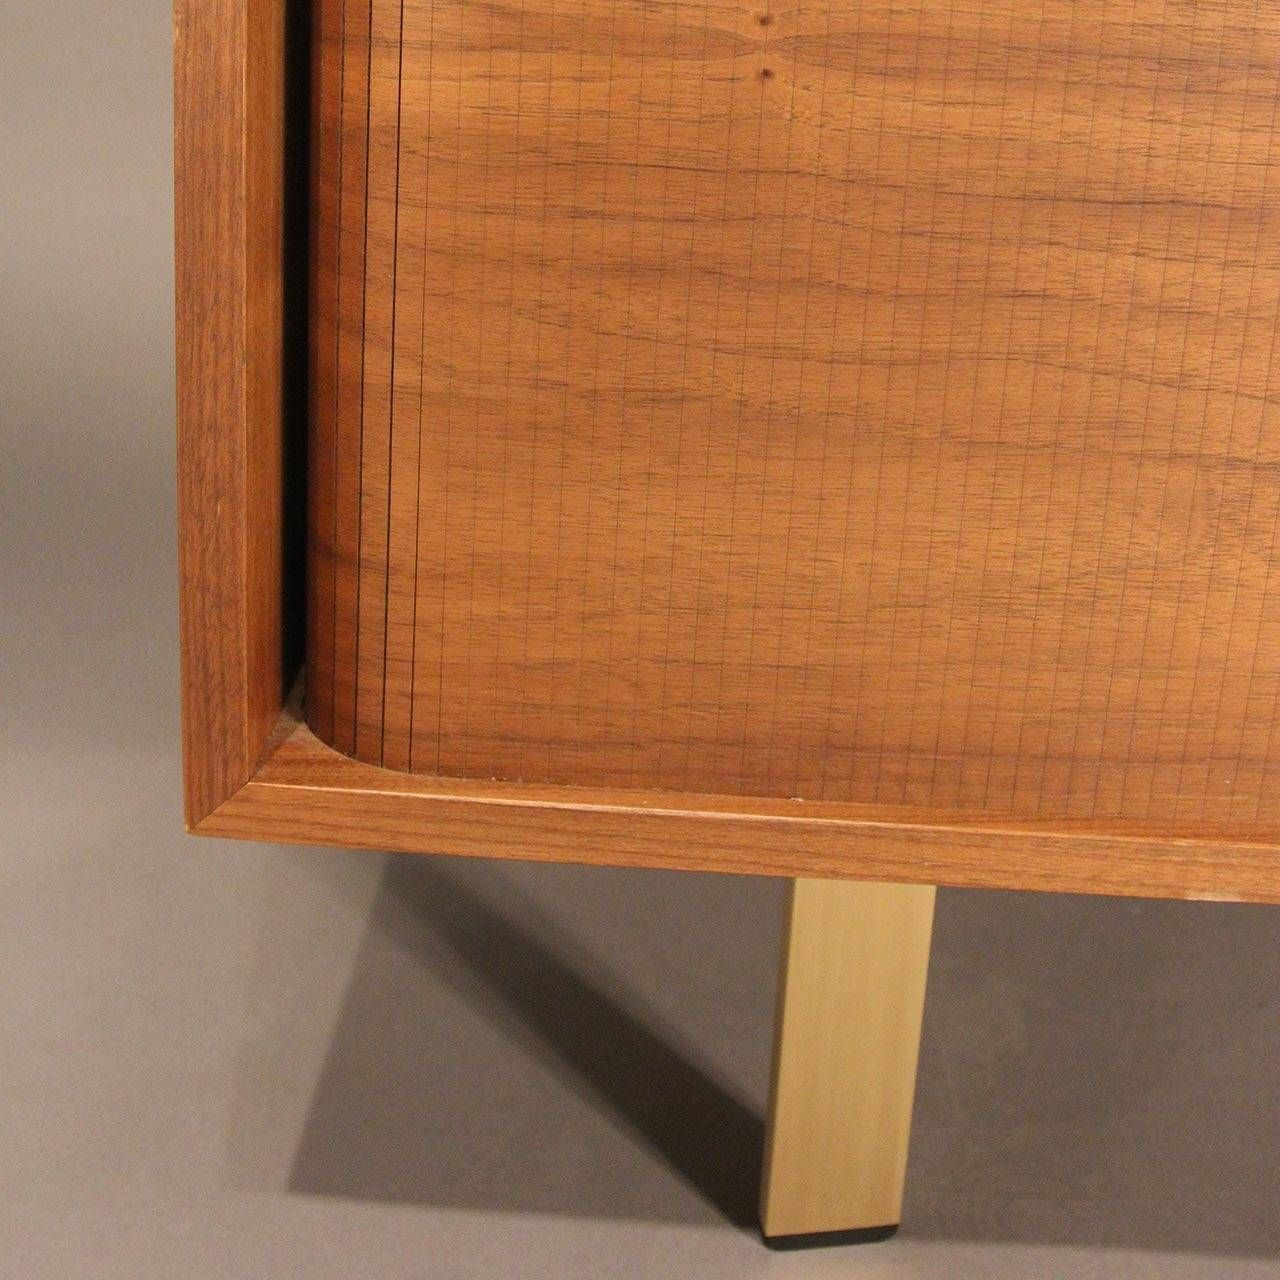 Walnut Credenza With Brass Hardware And Tambour Doors 6 Diy